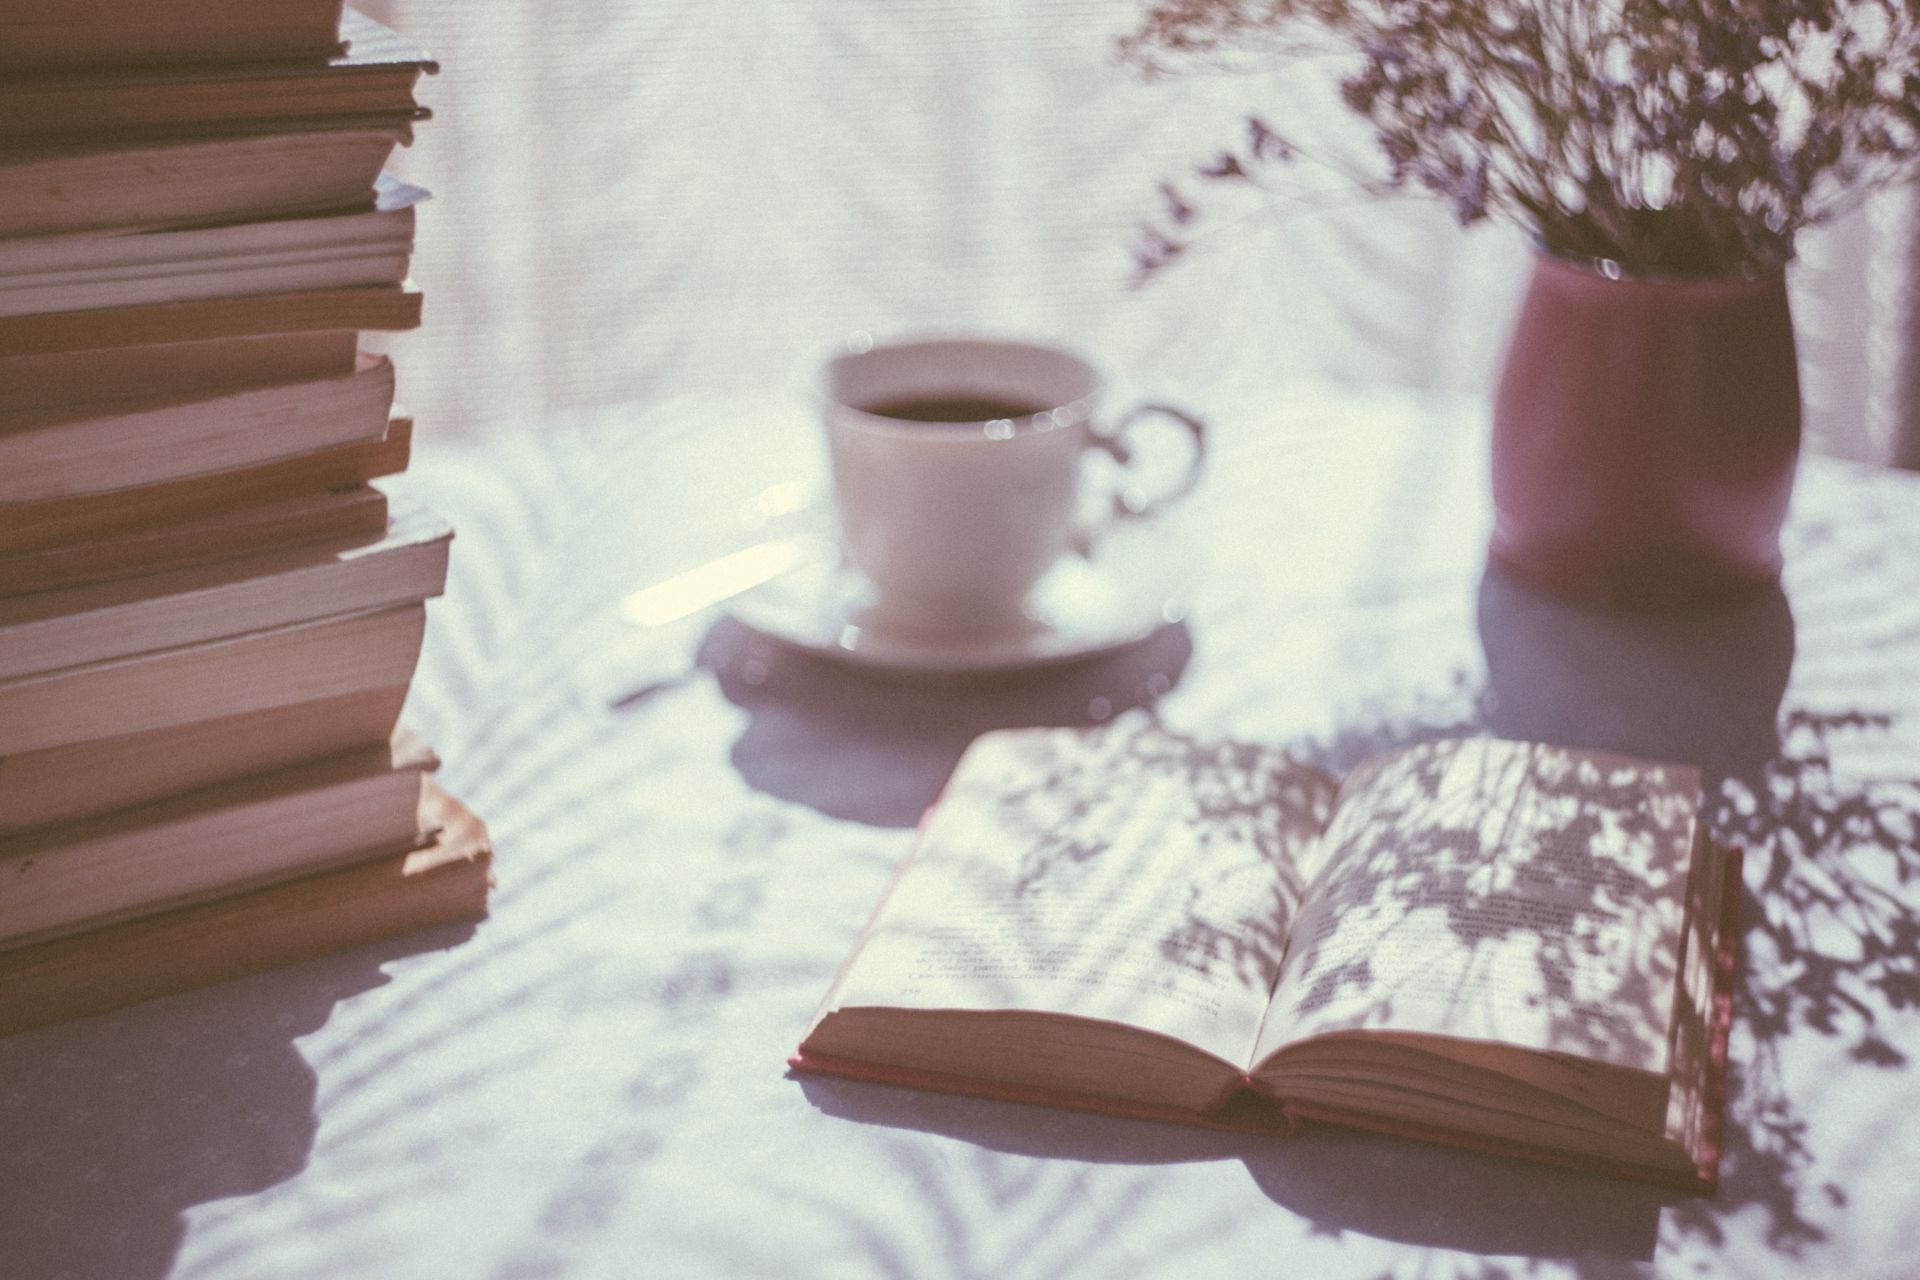 A table with books and hot tea